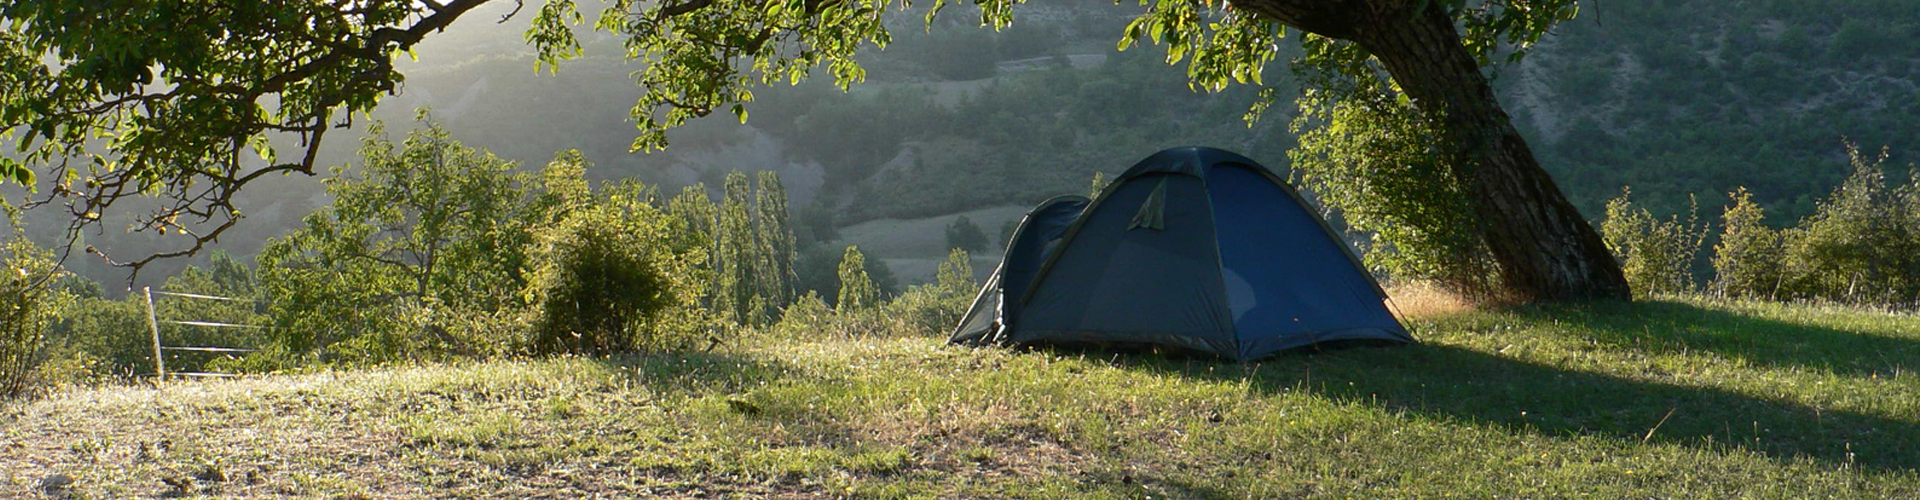 camping-france.info